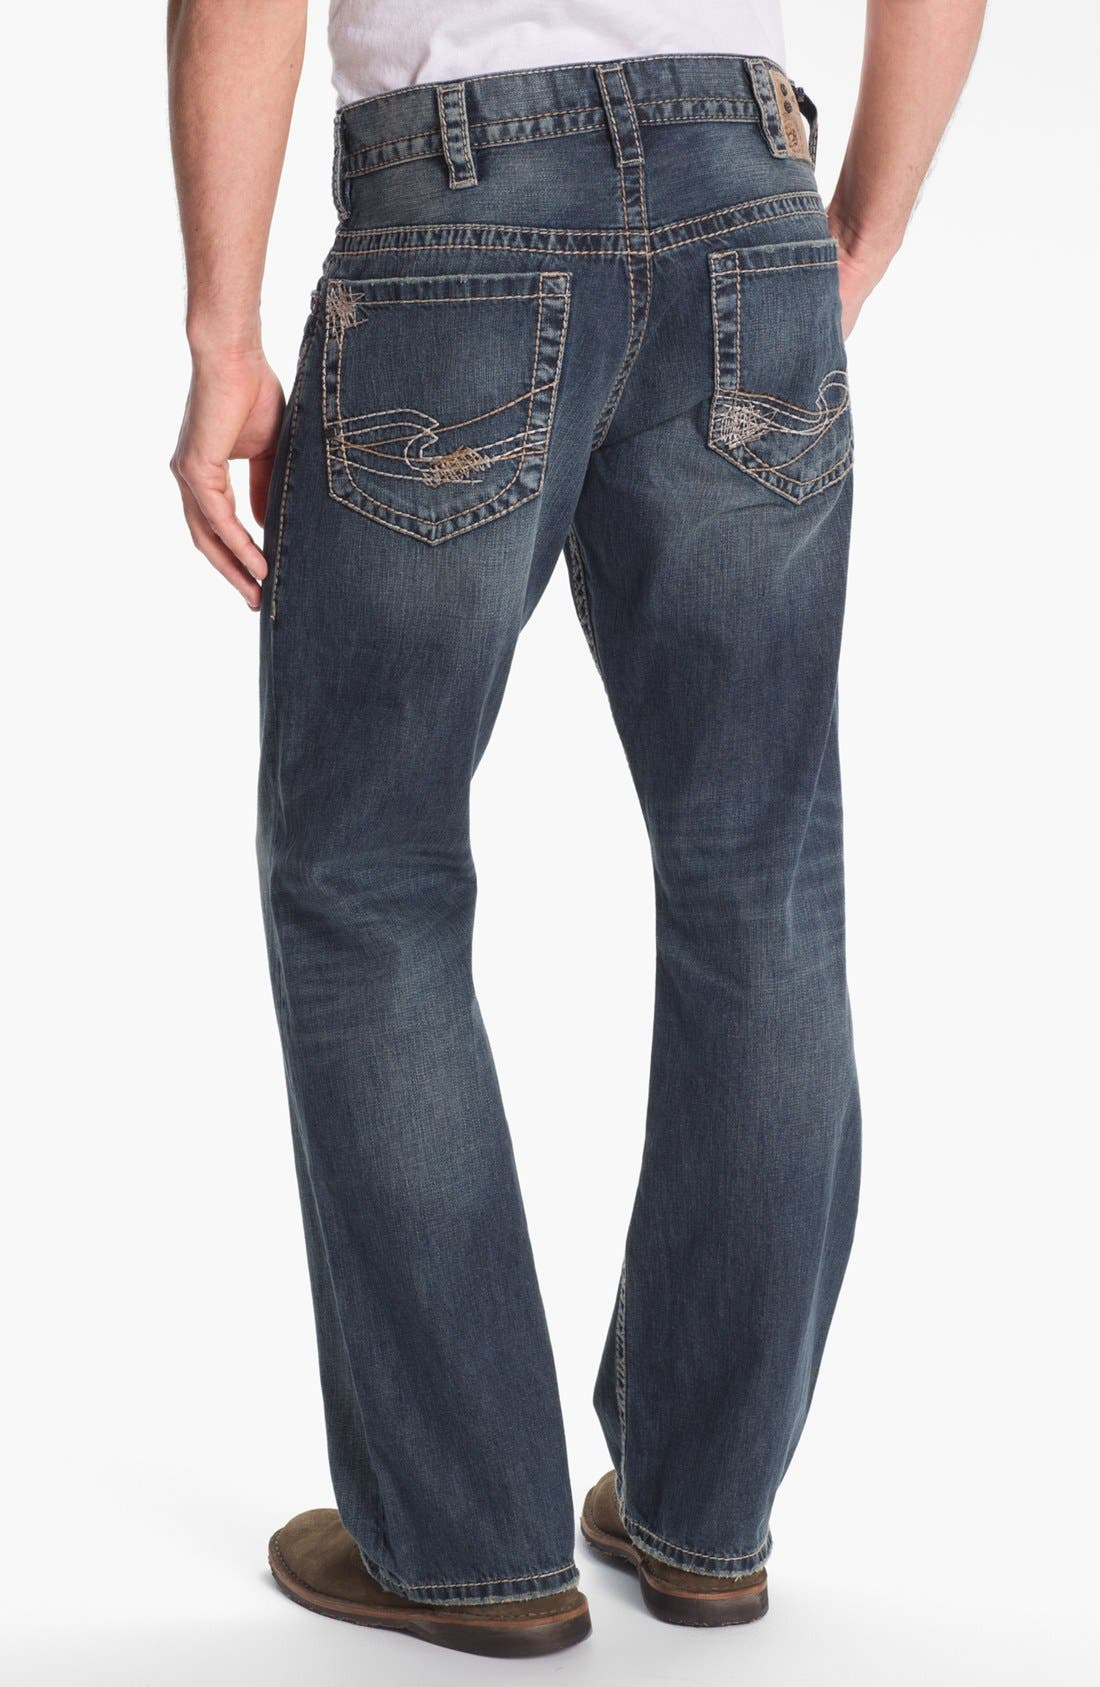 Main Image - Silver Jeans Co. 'Gordie' Bootcut Jeans (Indigo)